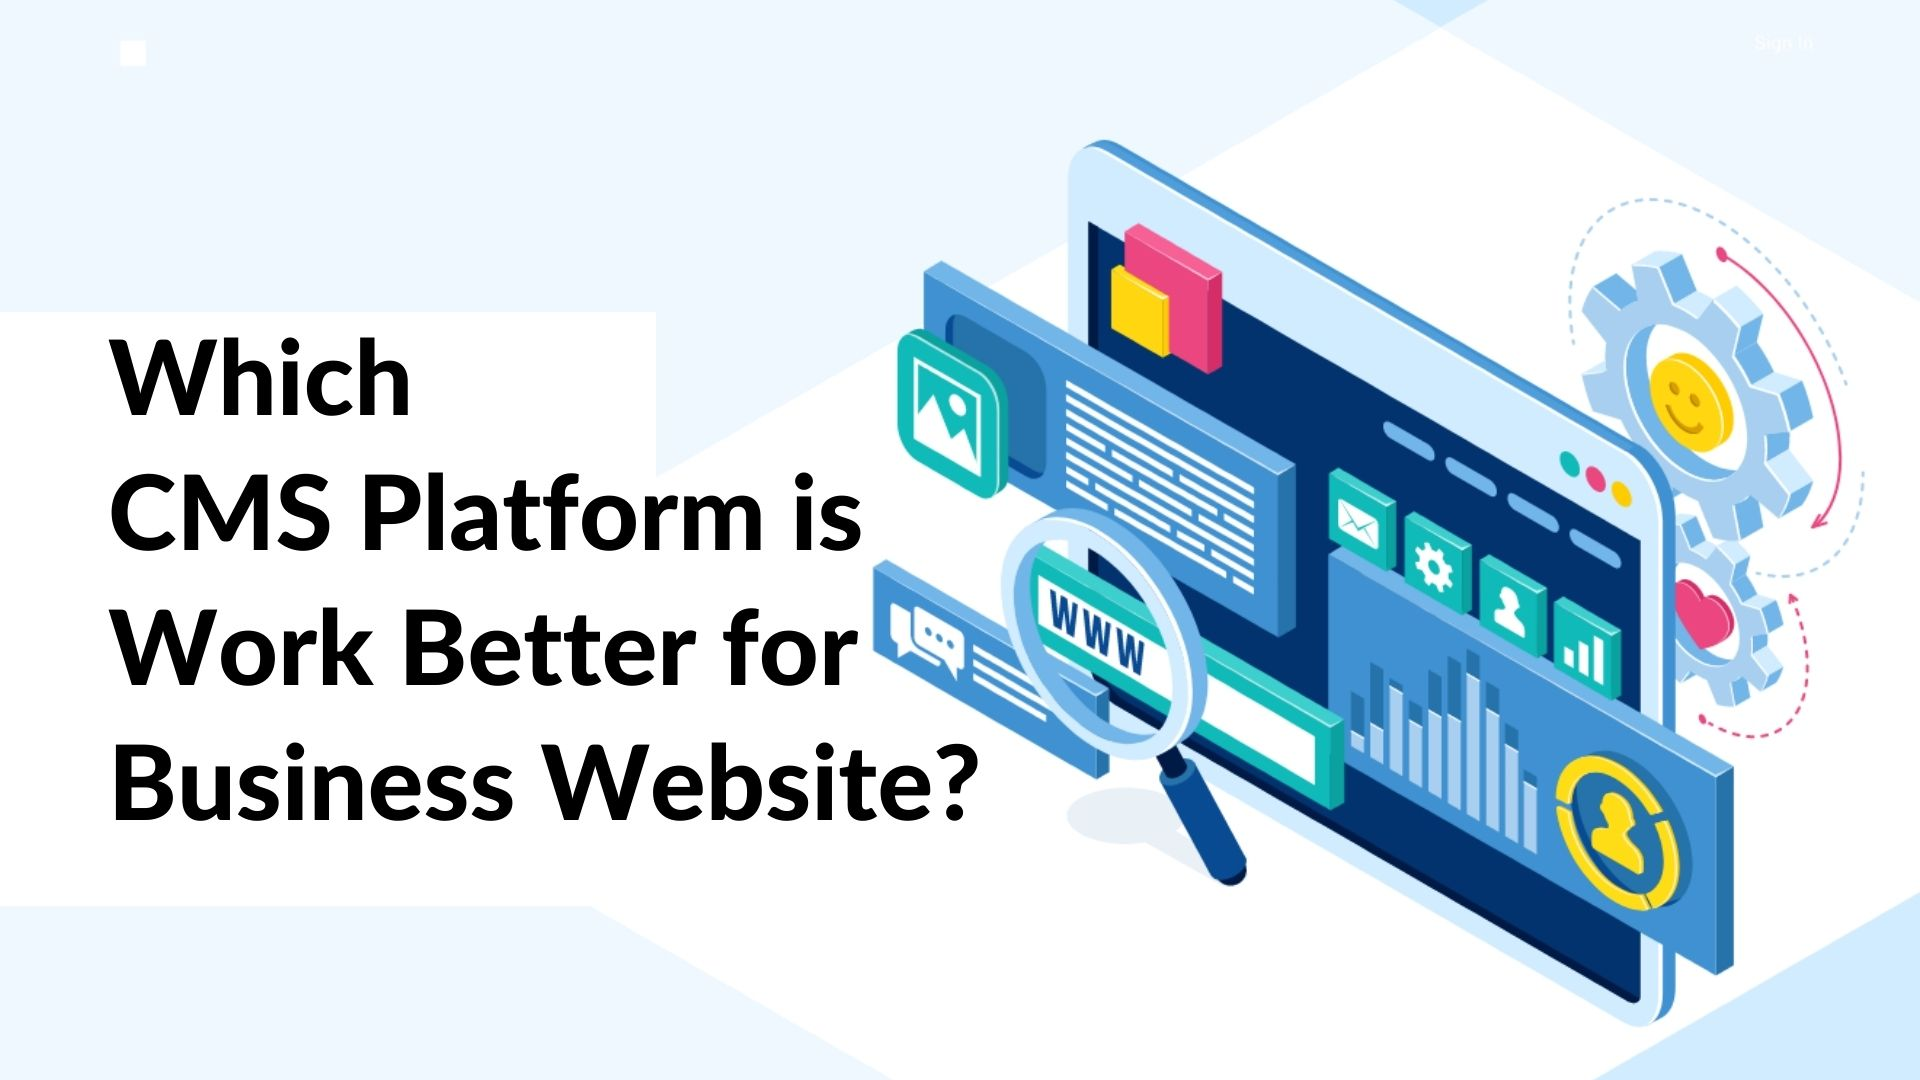 Which CMS Platform is Work Better for Business Website?